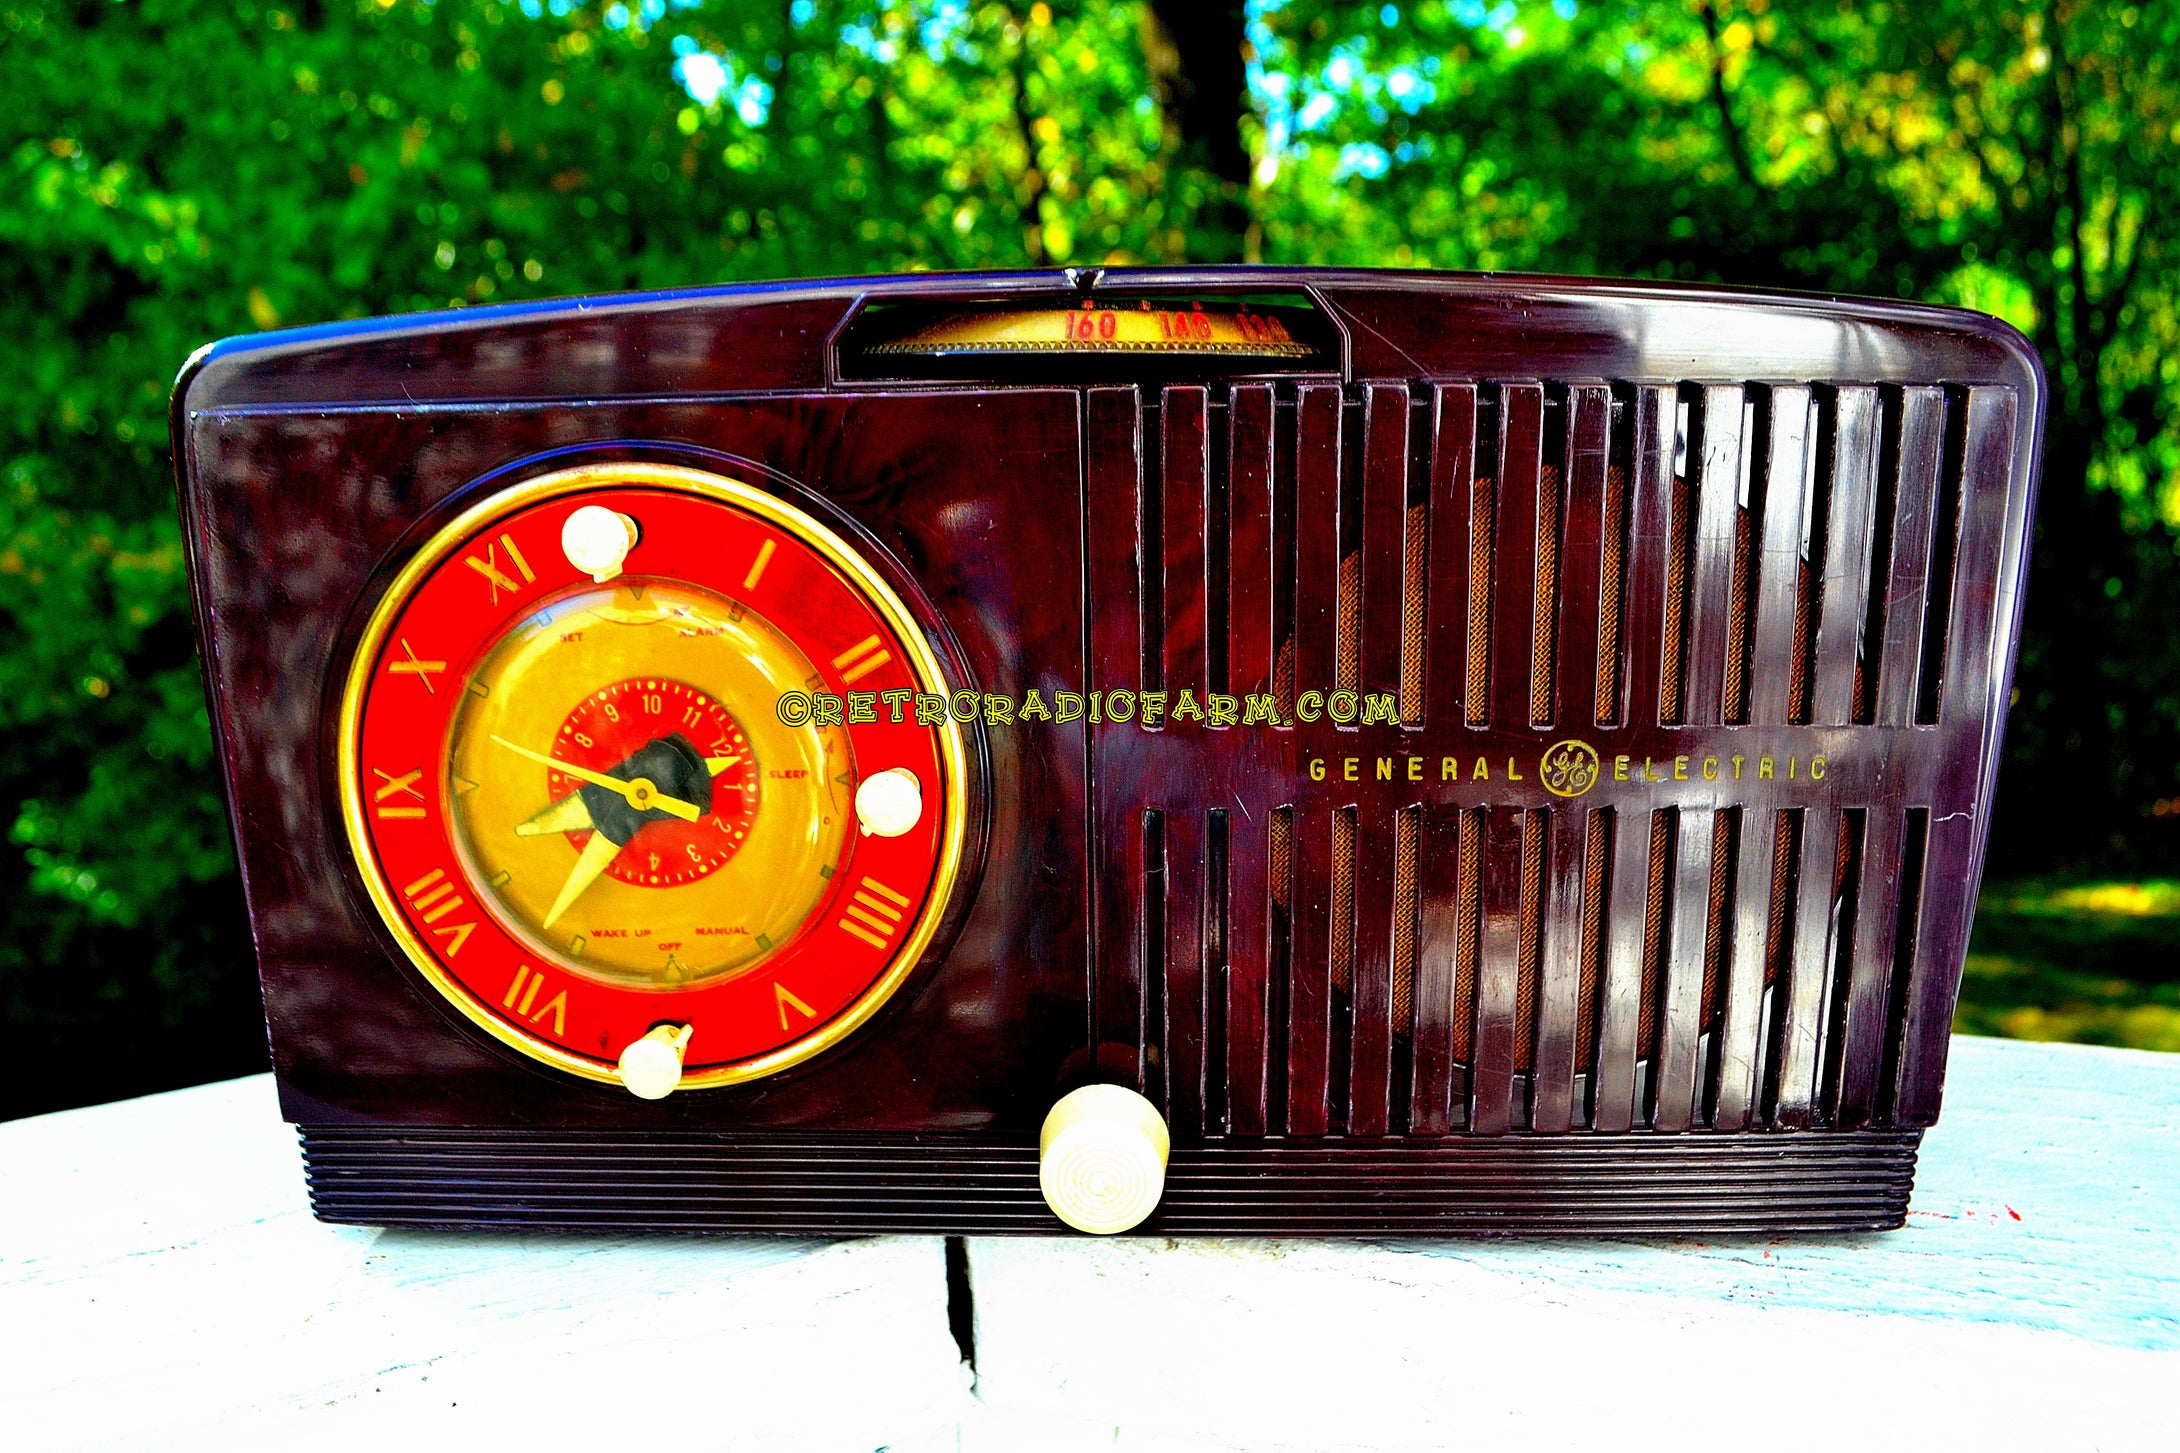 SOLD! - Nov 20, 2017 - BLUETOOTH MP3 READY - Brown Swirly Mid Century Vintage 1952 General Electric Model 542 AM Brown Bakelite Tube Clock Radio Works and Looks Great! - [product_type} - General Electric - Retro Radio Farm